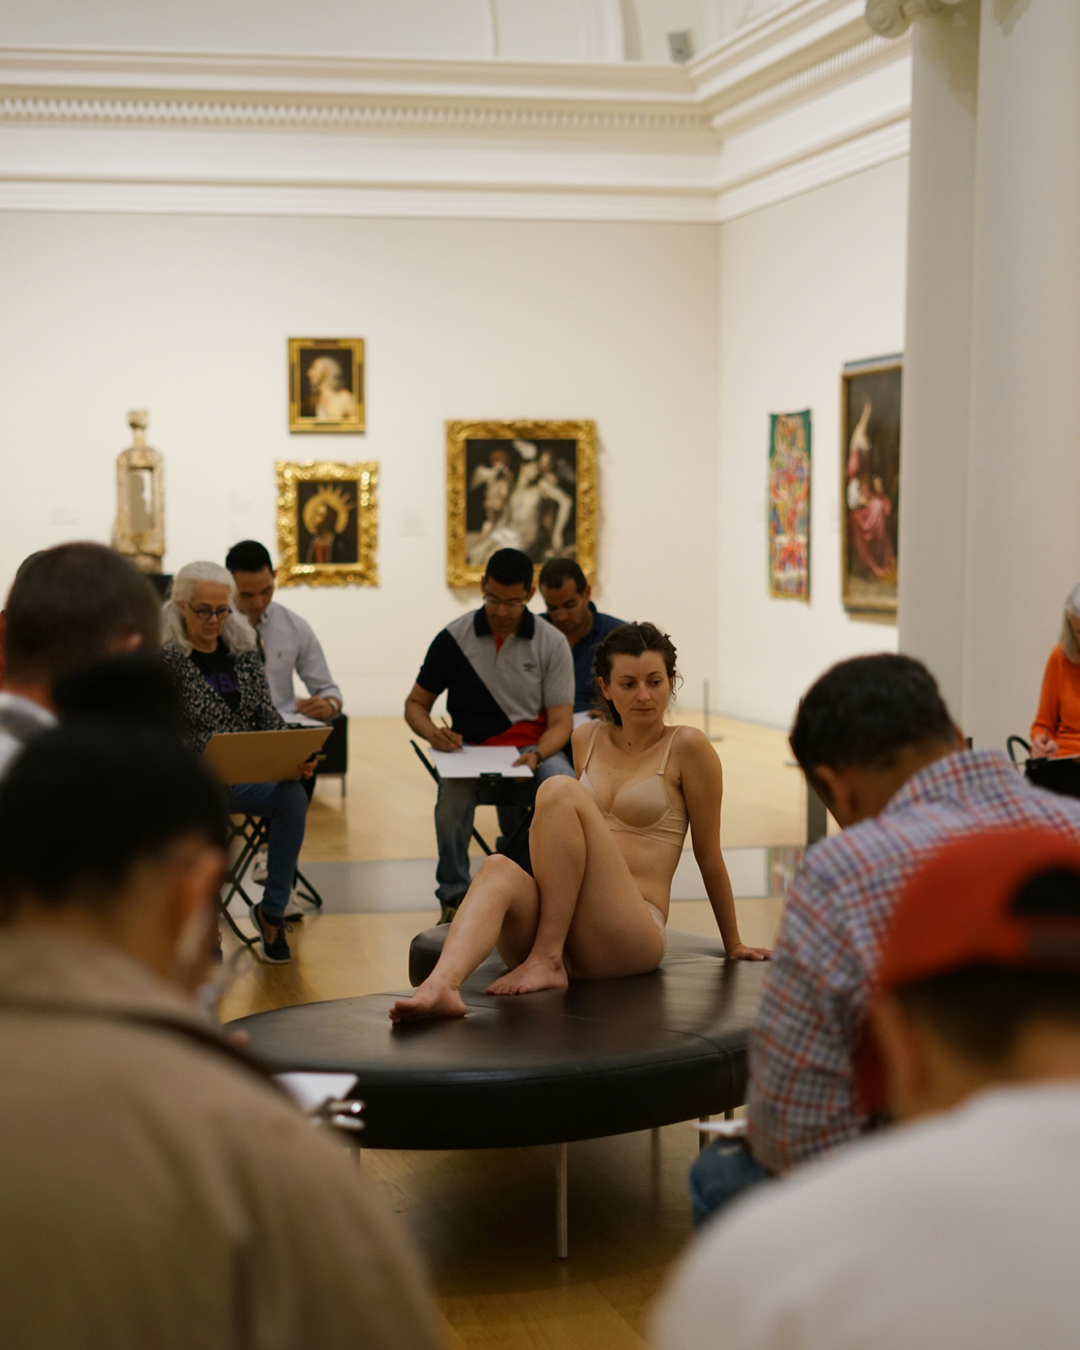 A woman is a still life model as people sit around her sketching at the Auckland Art Gallery